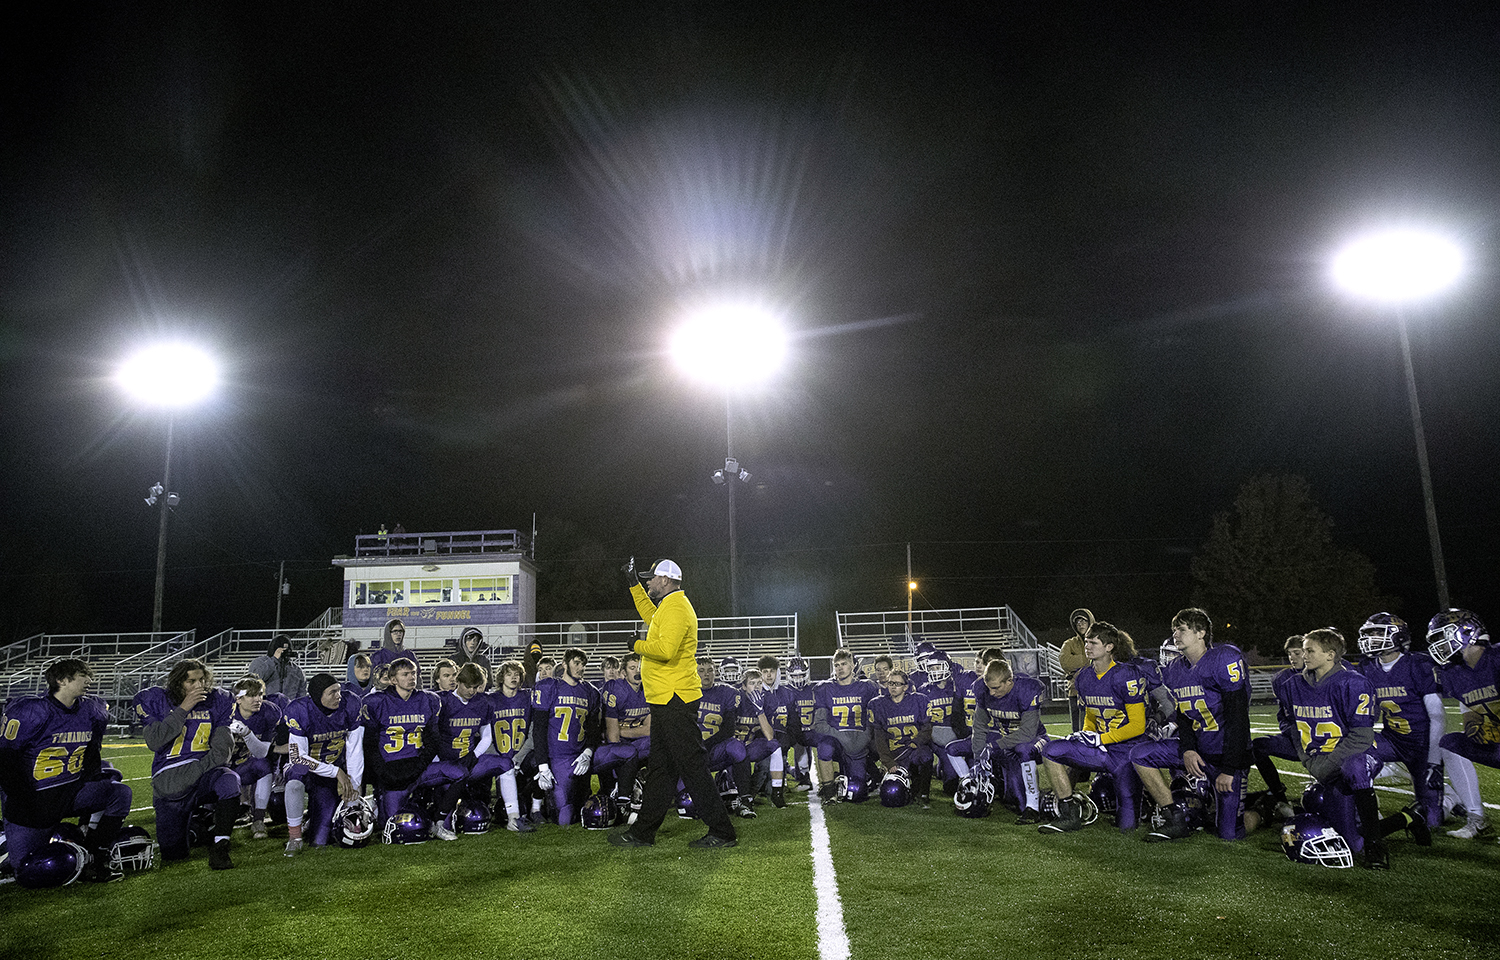 Taylorville head coach Jeb Odam talks to the team after a loss to Rochester during the Class 4A quarterfinals in Taylorville Saturday, Nov. 10, 2018. [Ted Schurter/The State Journal-Register]